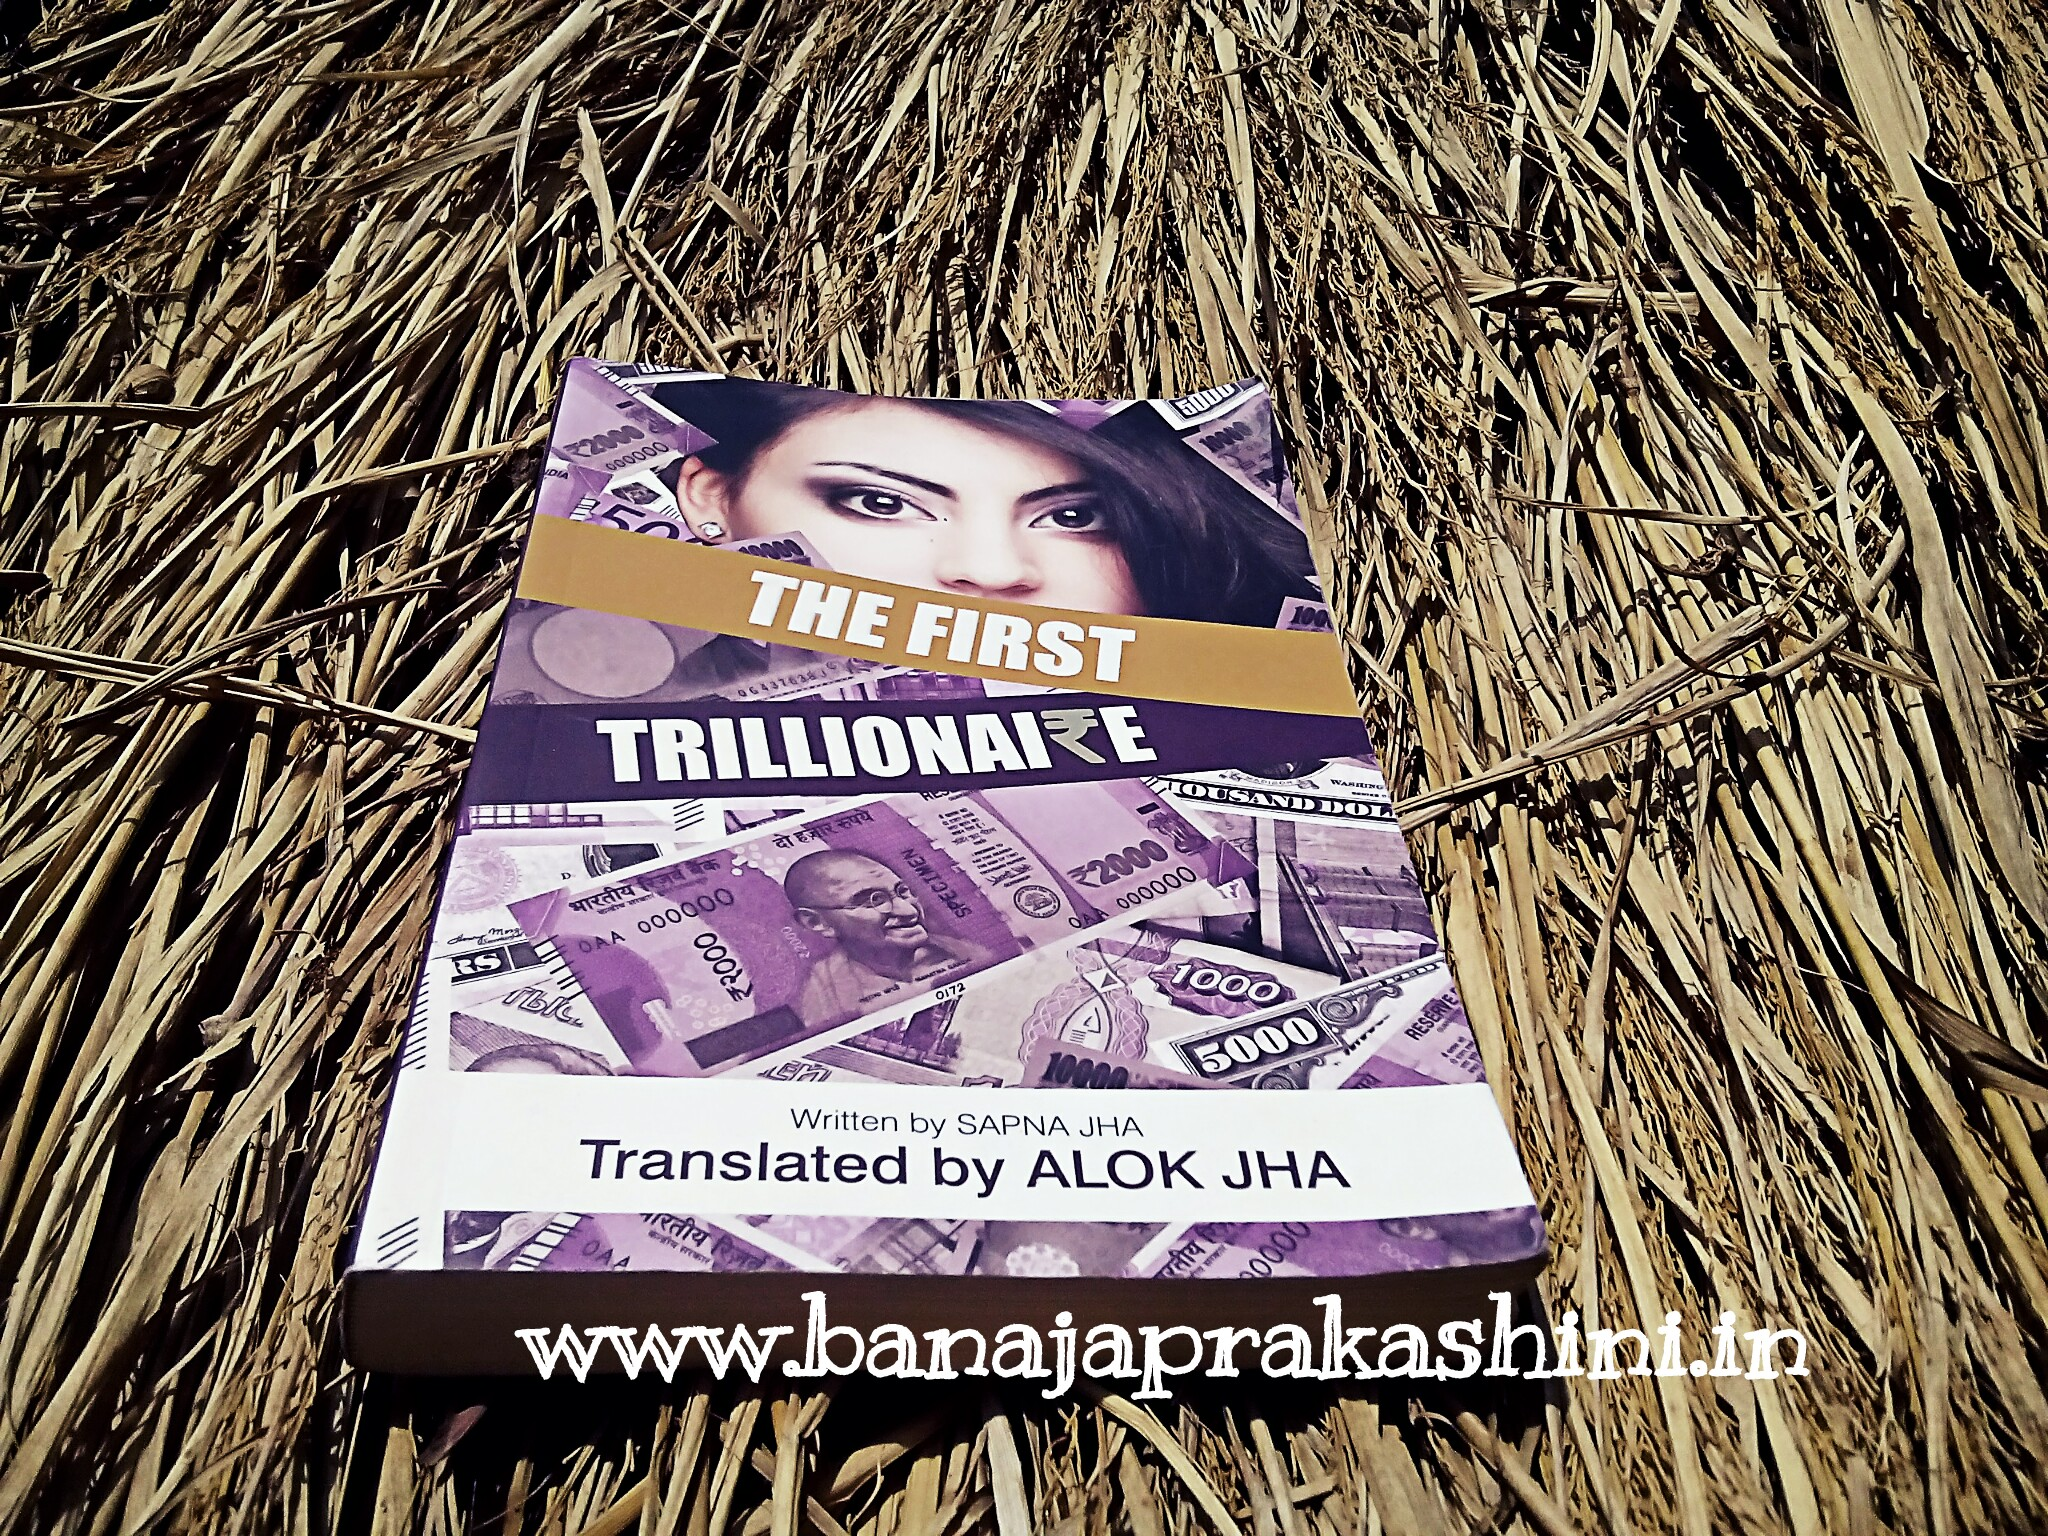 Review Pen: The First Trillionaire by Sapna Jha